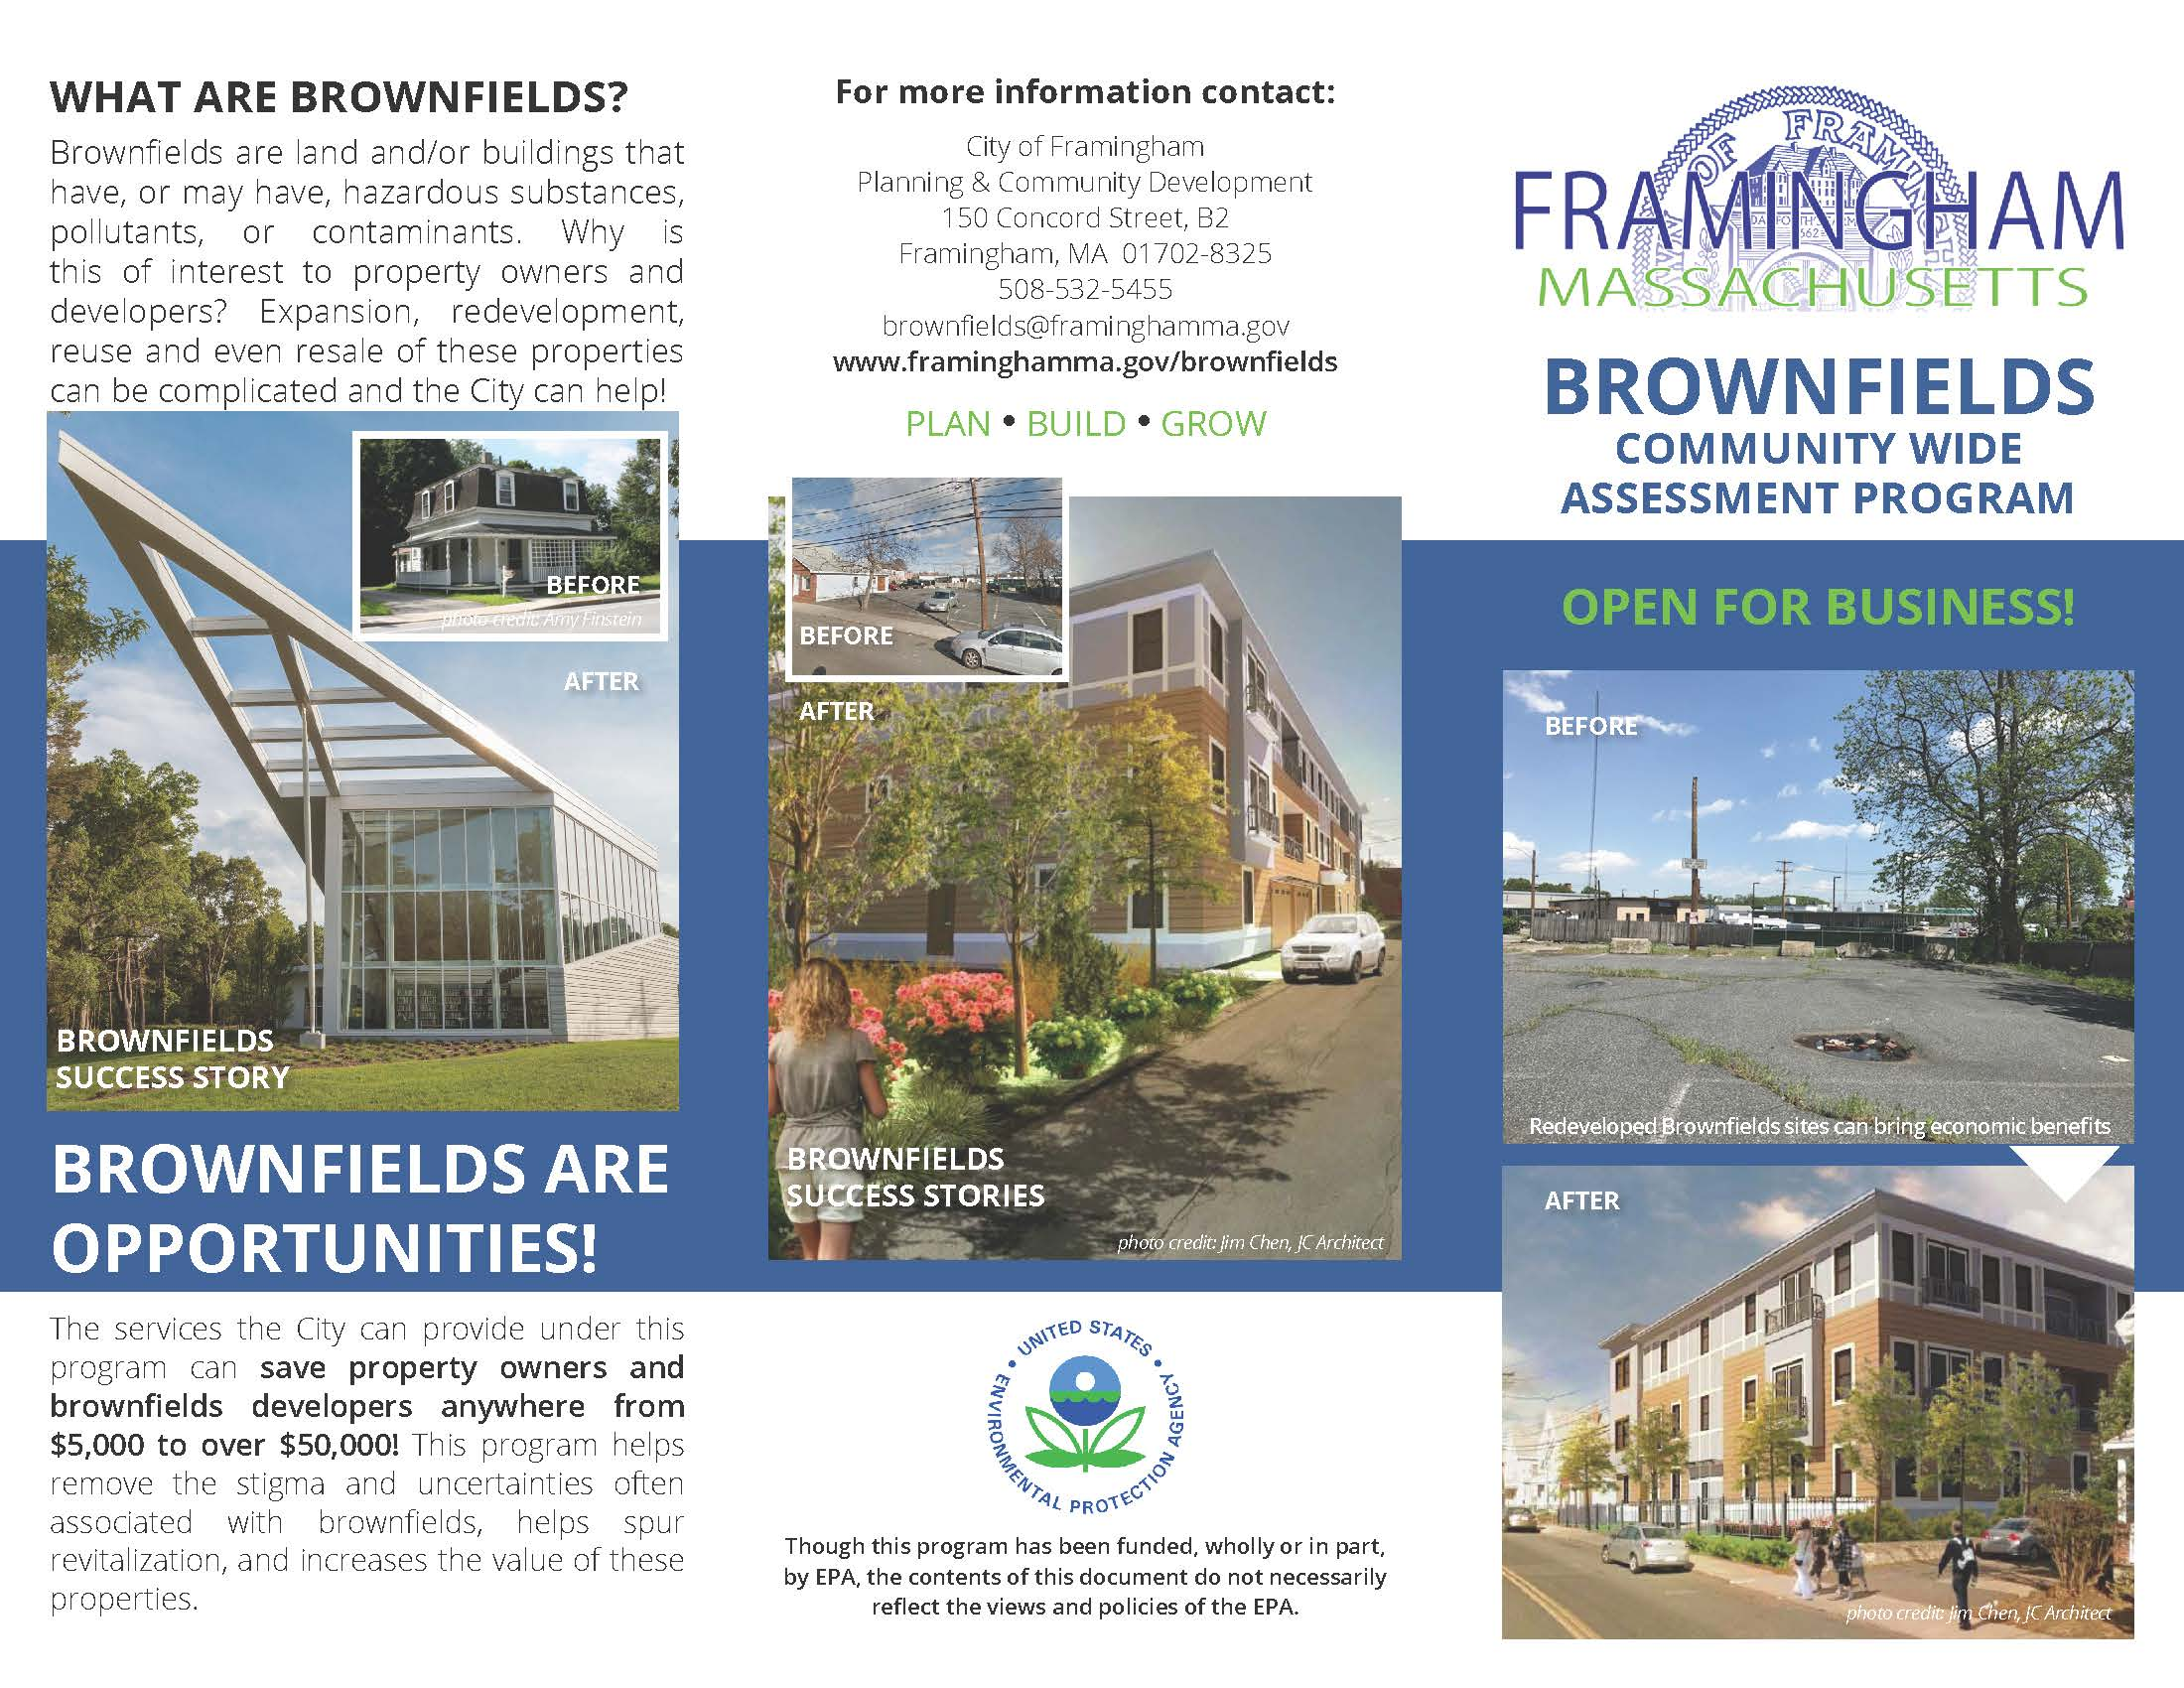 Framingham Brownfields Program Brochure cover-image